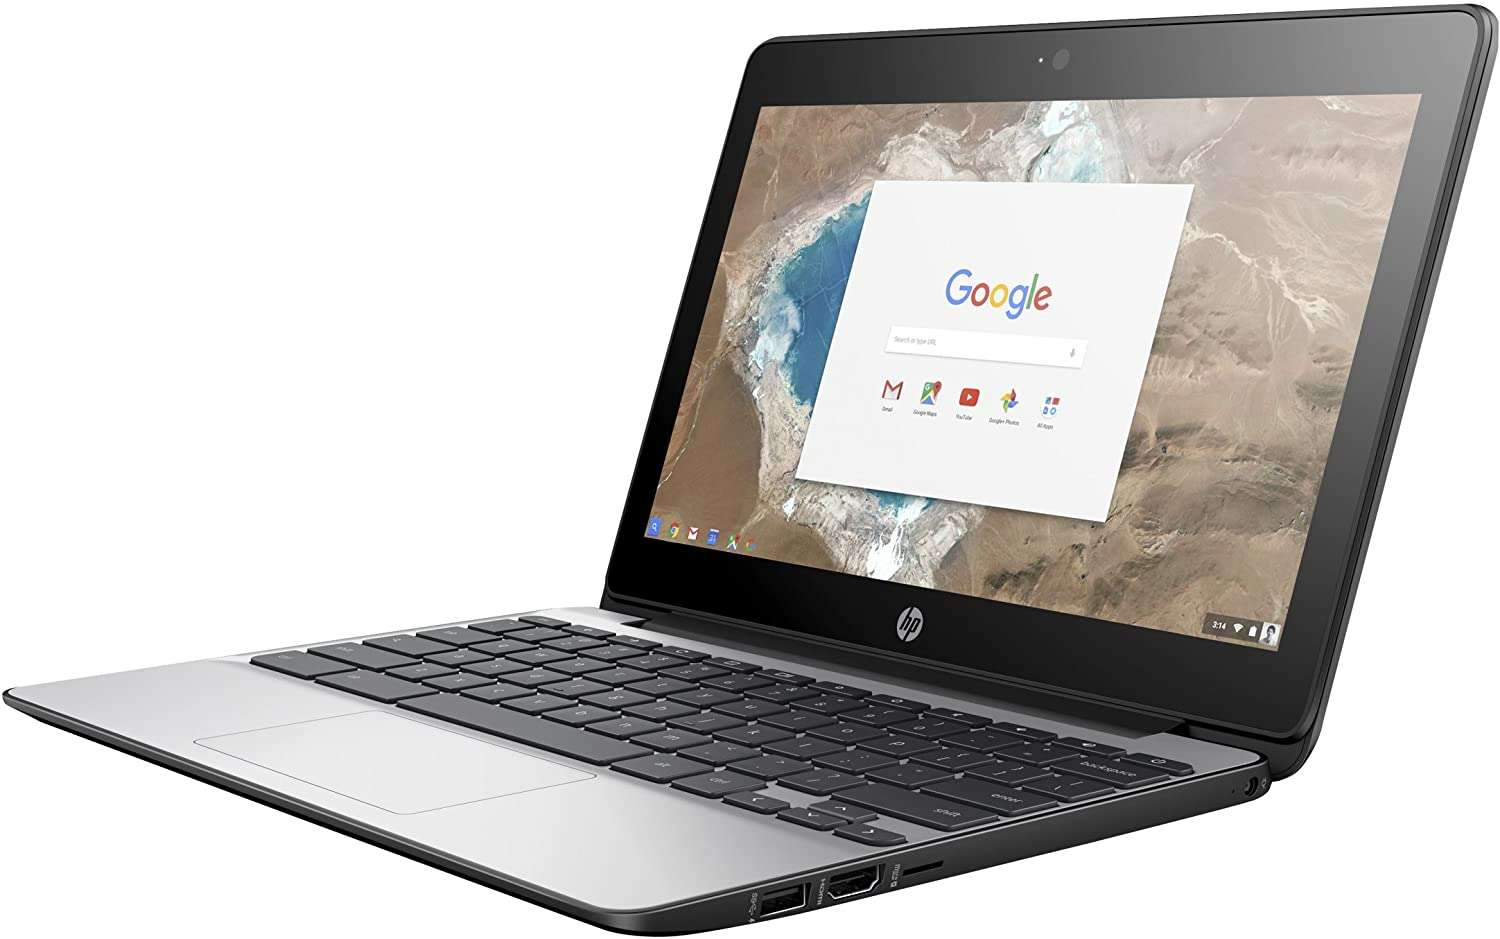 HP Chromebook 11 - Best laptops for Middle School Students 2021